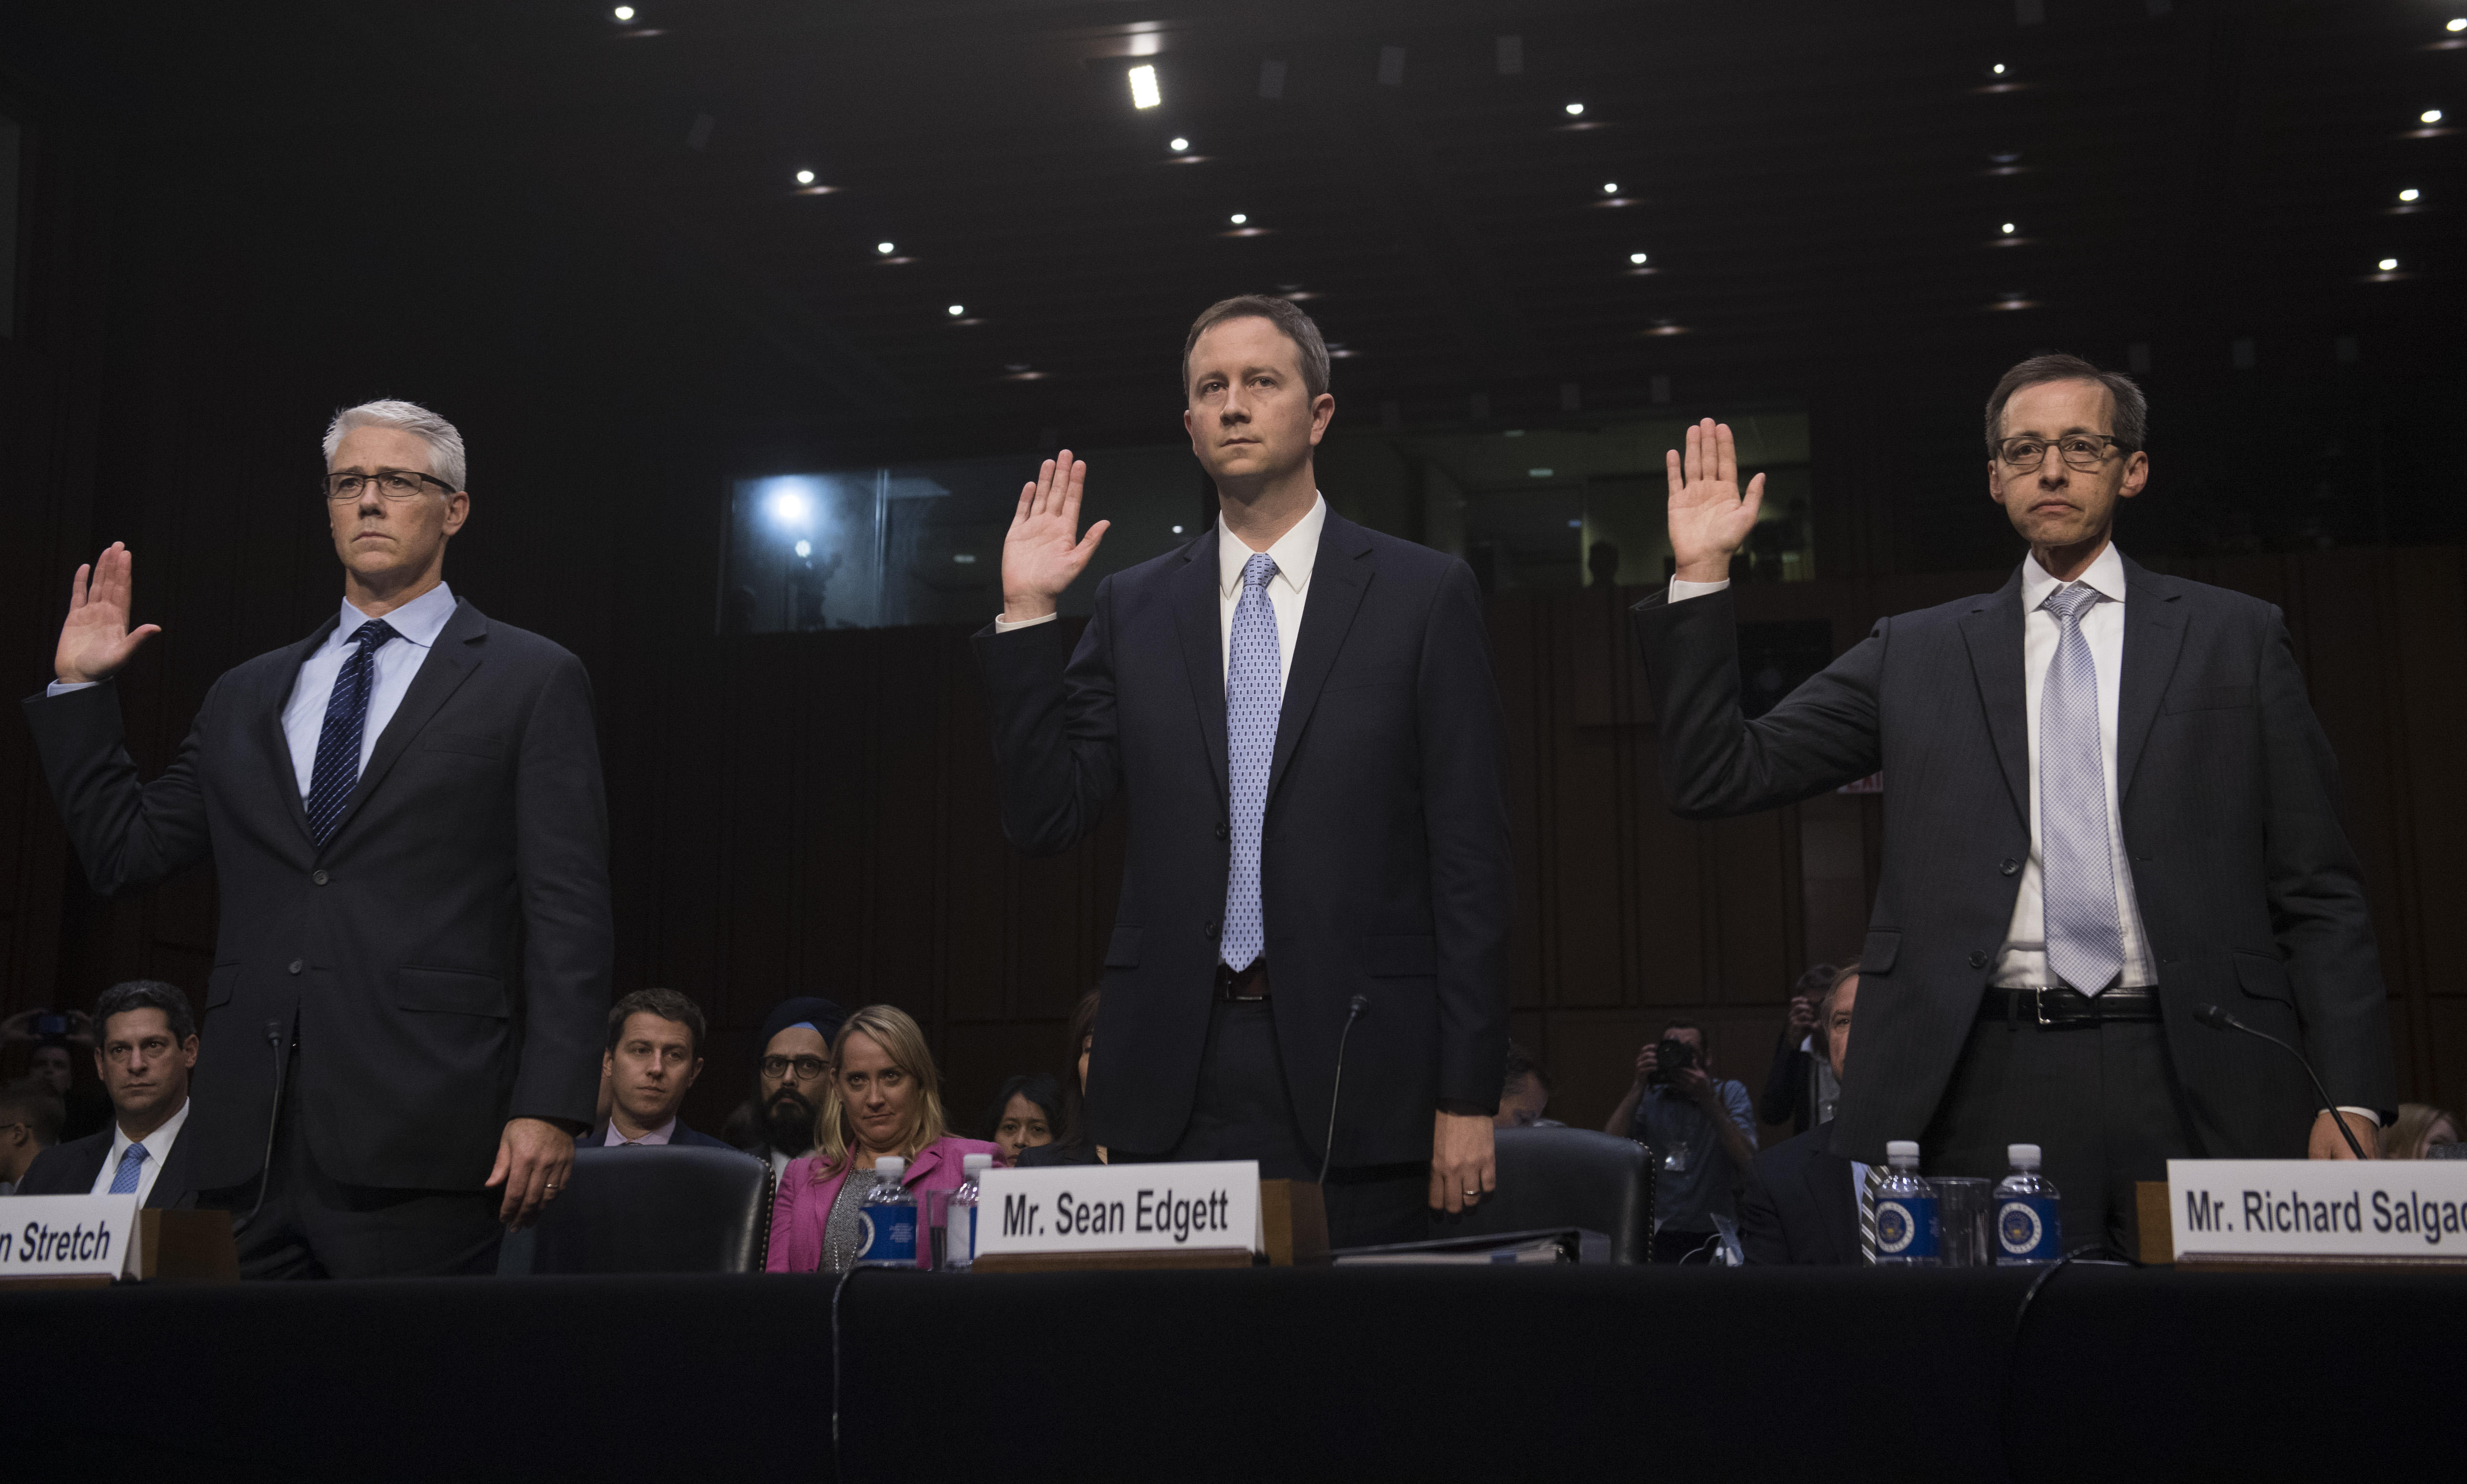 Left to right: Facebook General Counsel Colin Stretch, Twitter General Counsel Sean Edgett, and Google Director of Law Enforcement and Information Security Richard Salgado.